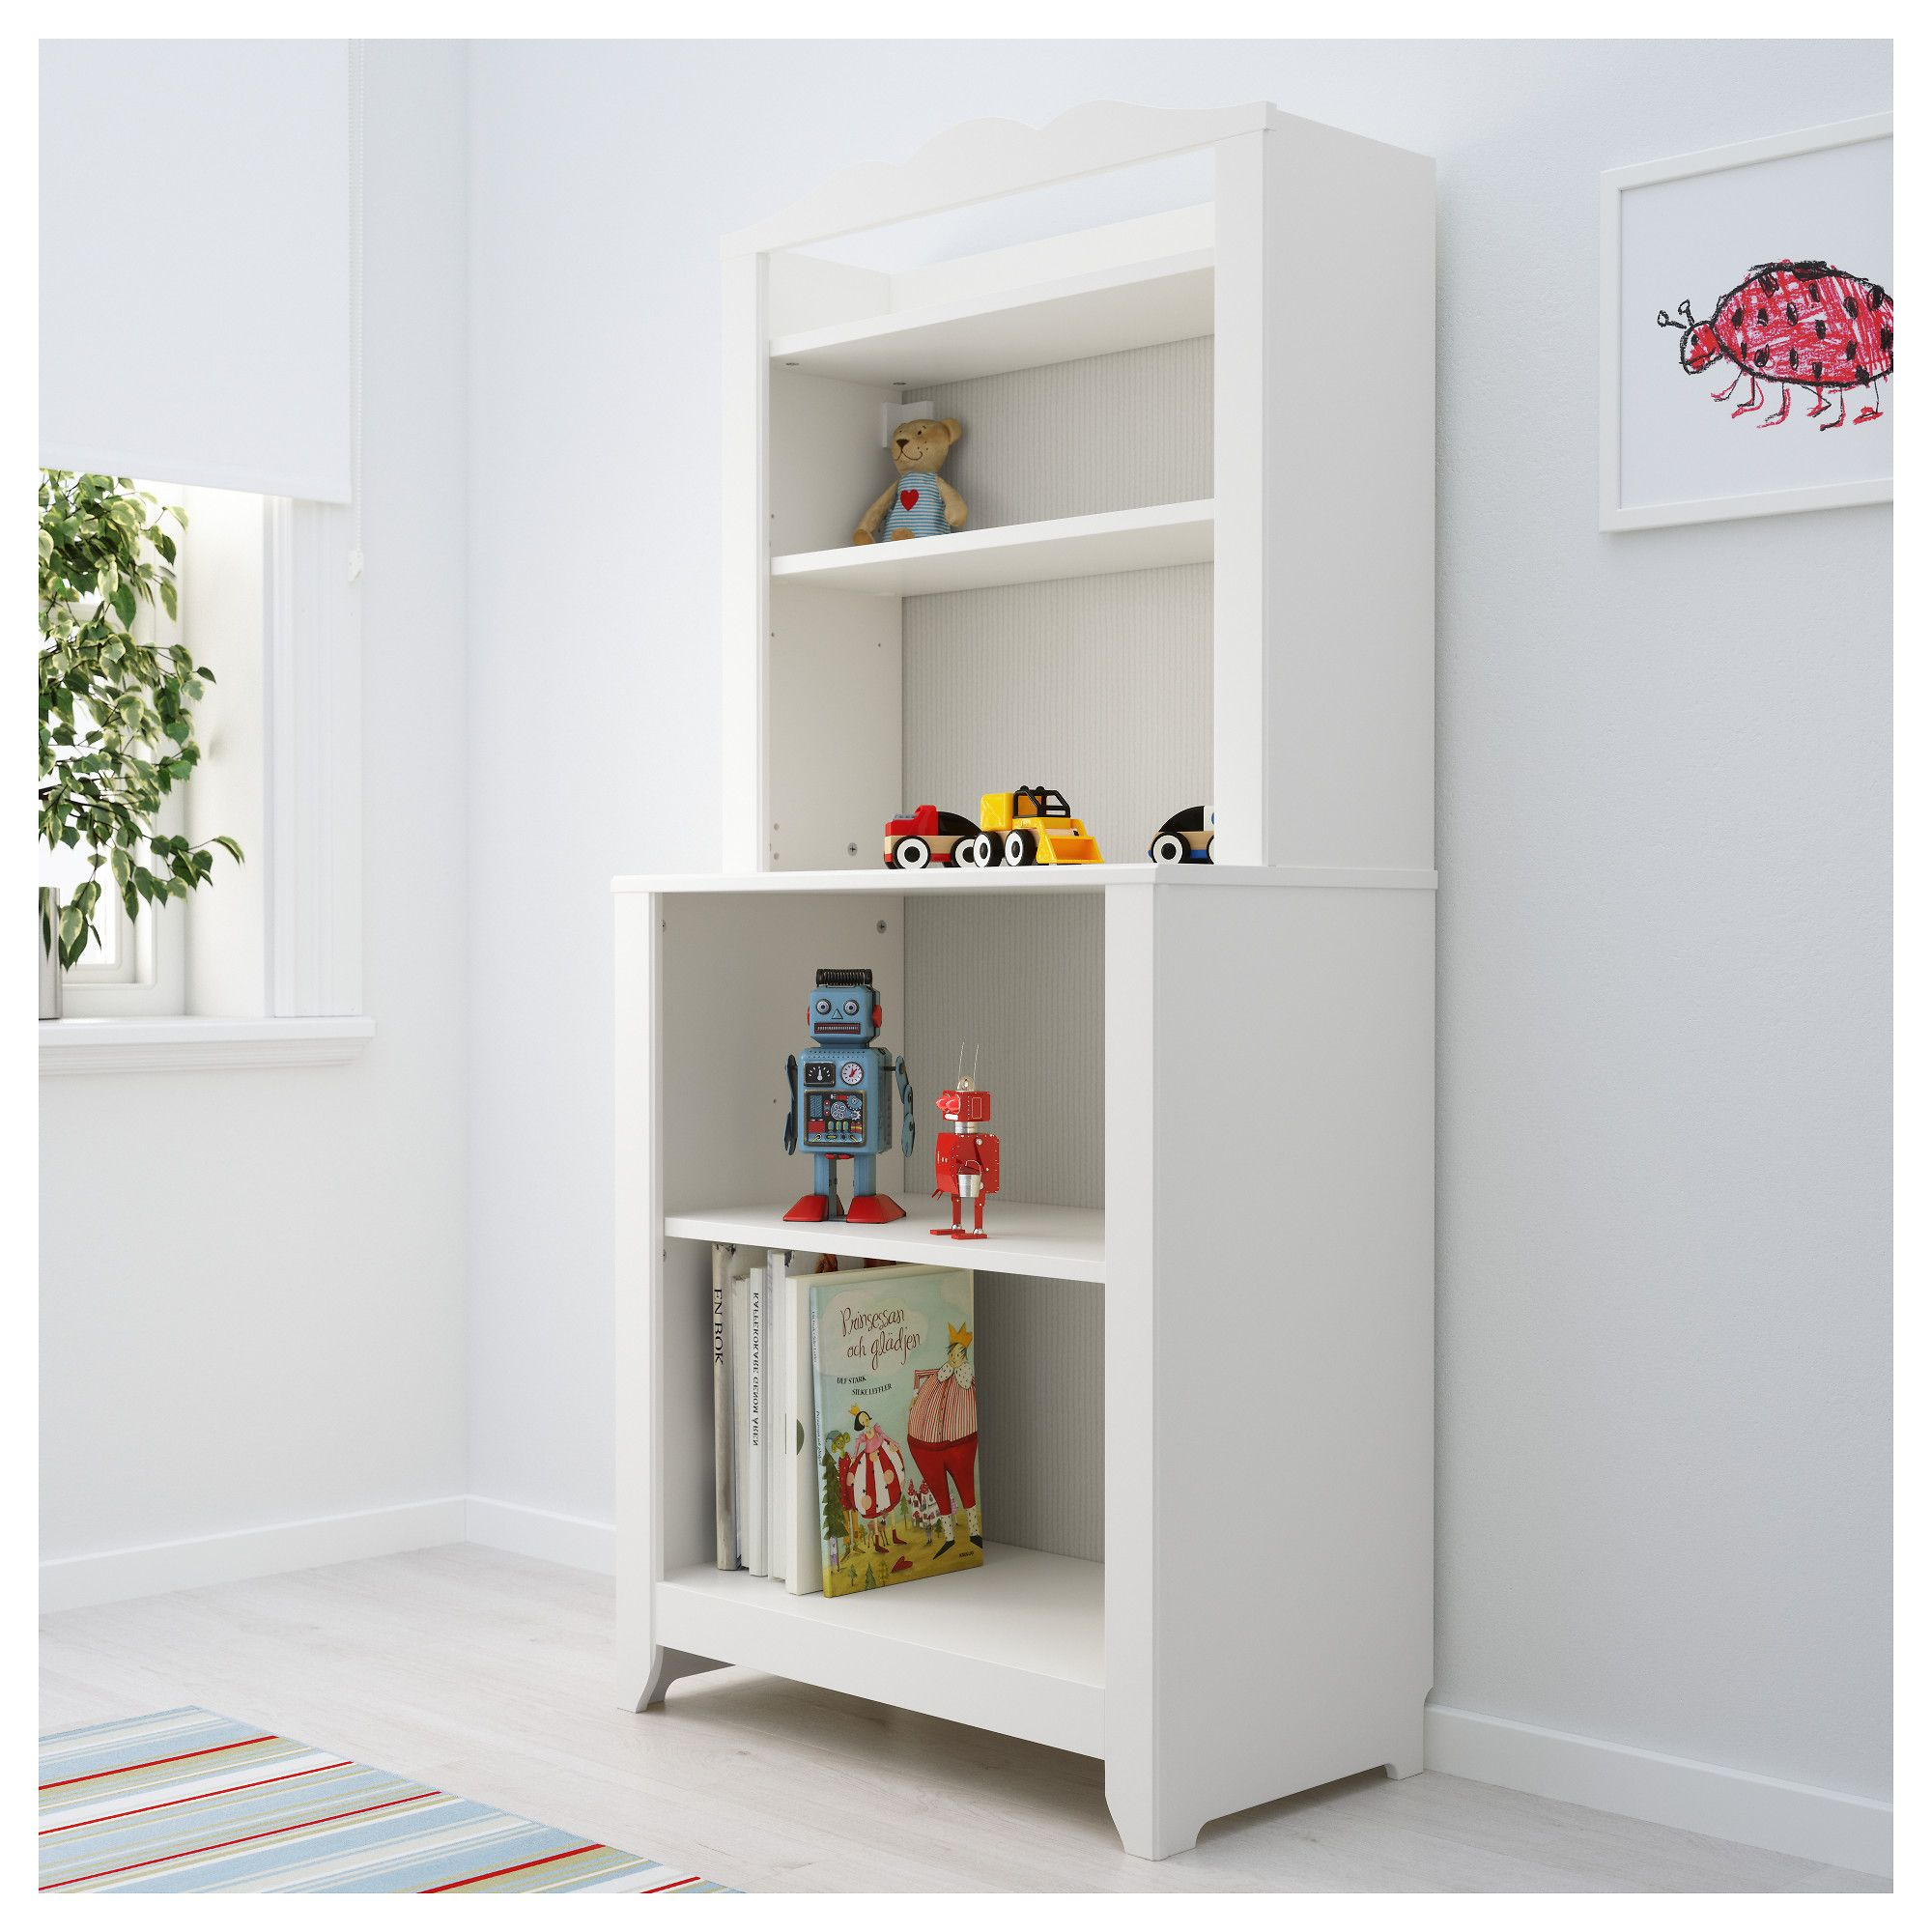 Furniture And Home Furnishings With Images Childrens Storage